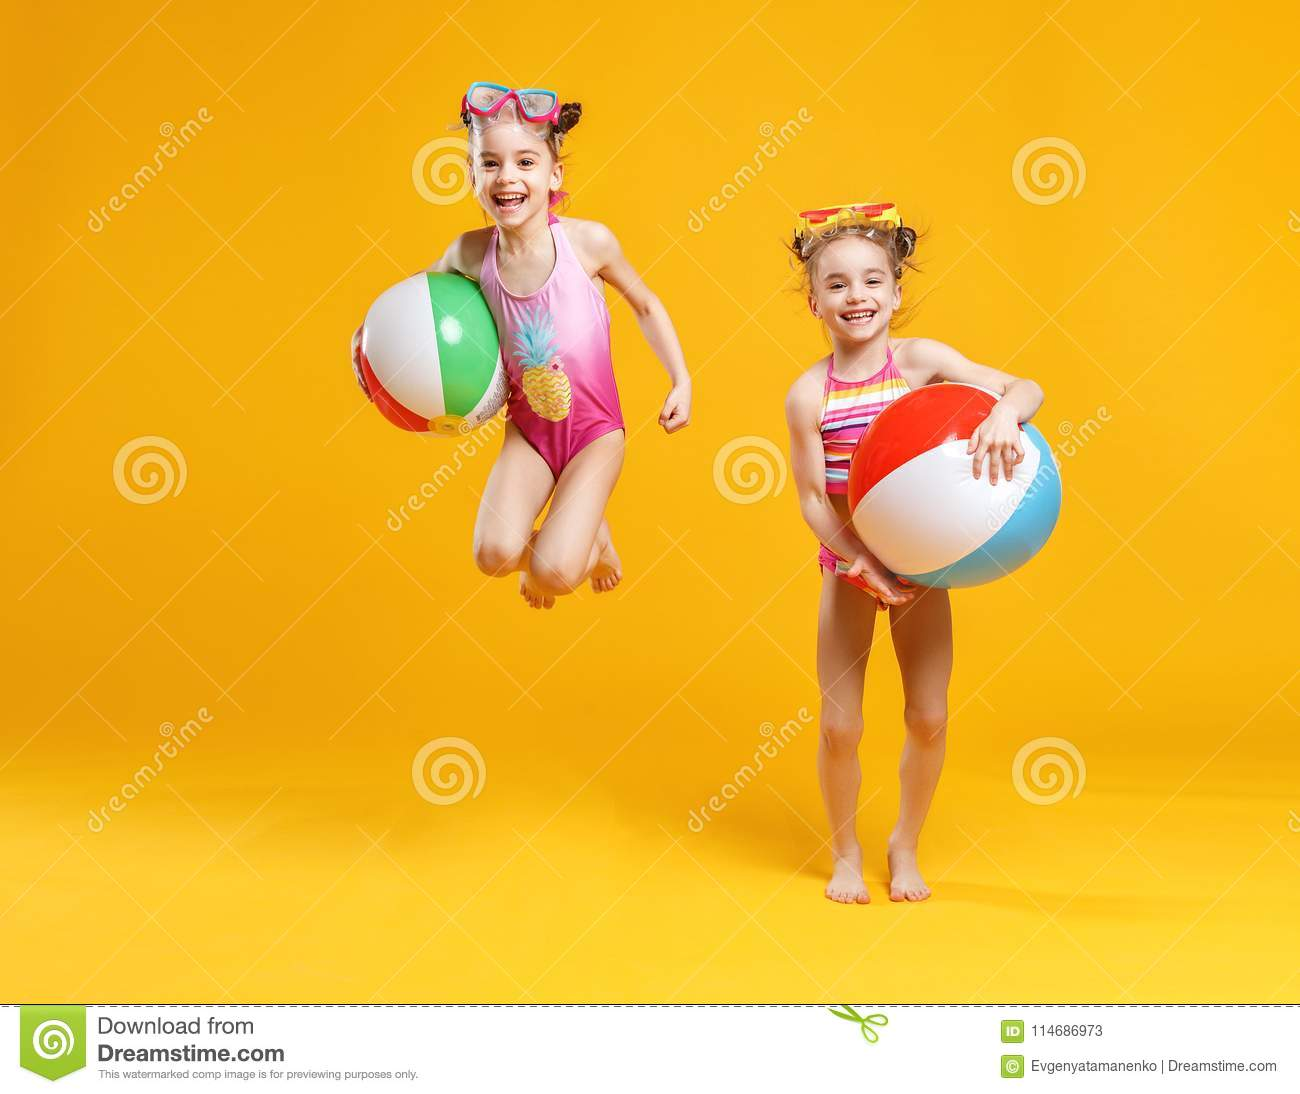 224639c25b Funny Funny Happy Children In Bathing Suits Jumping On Colored Stock ...